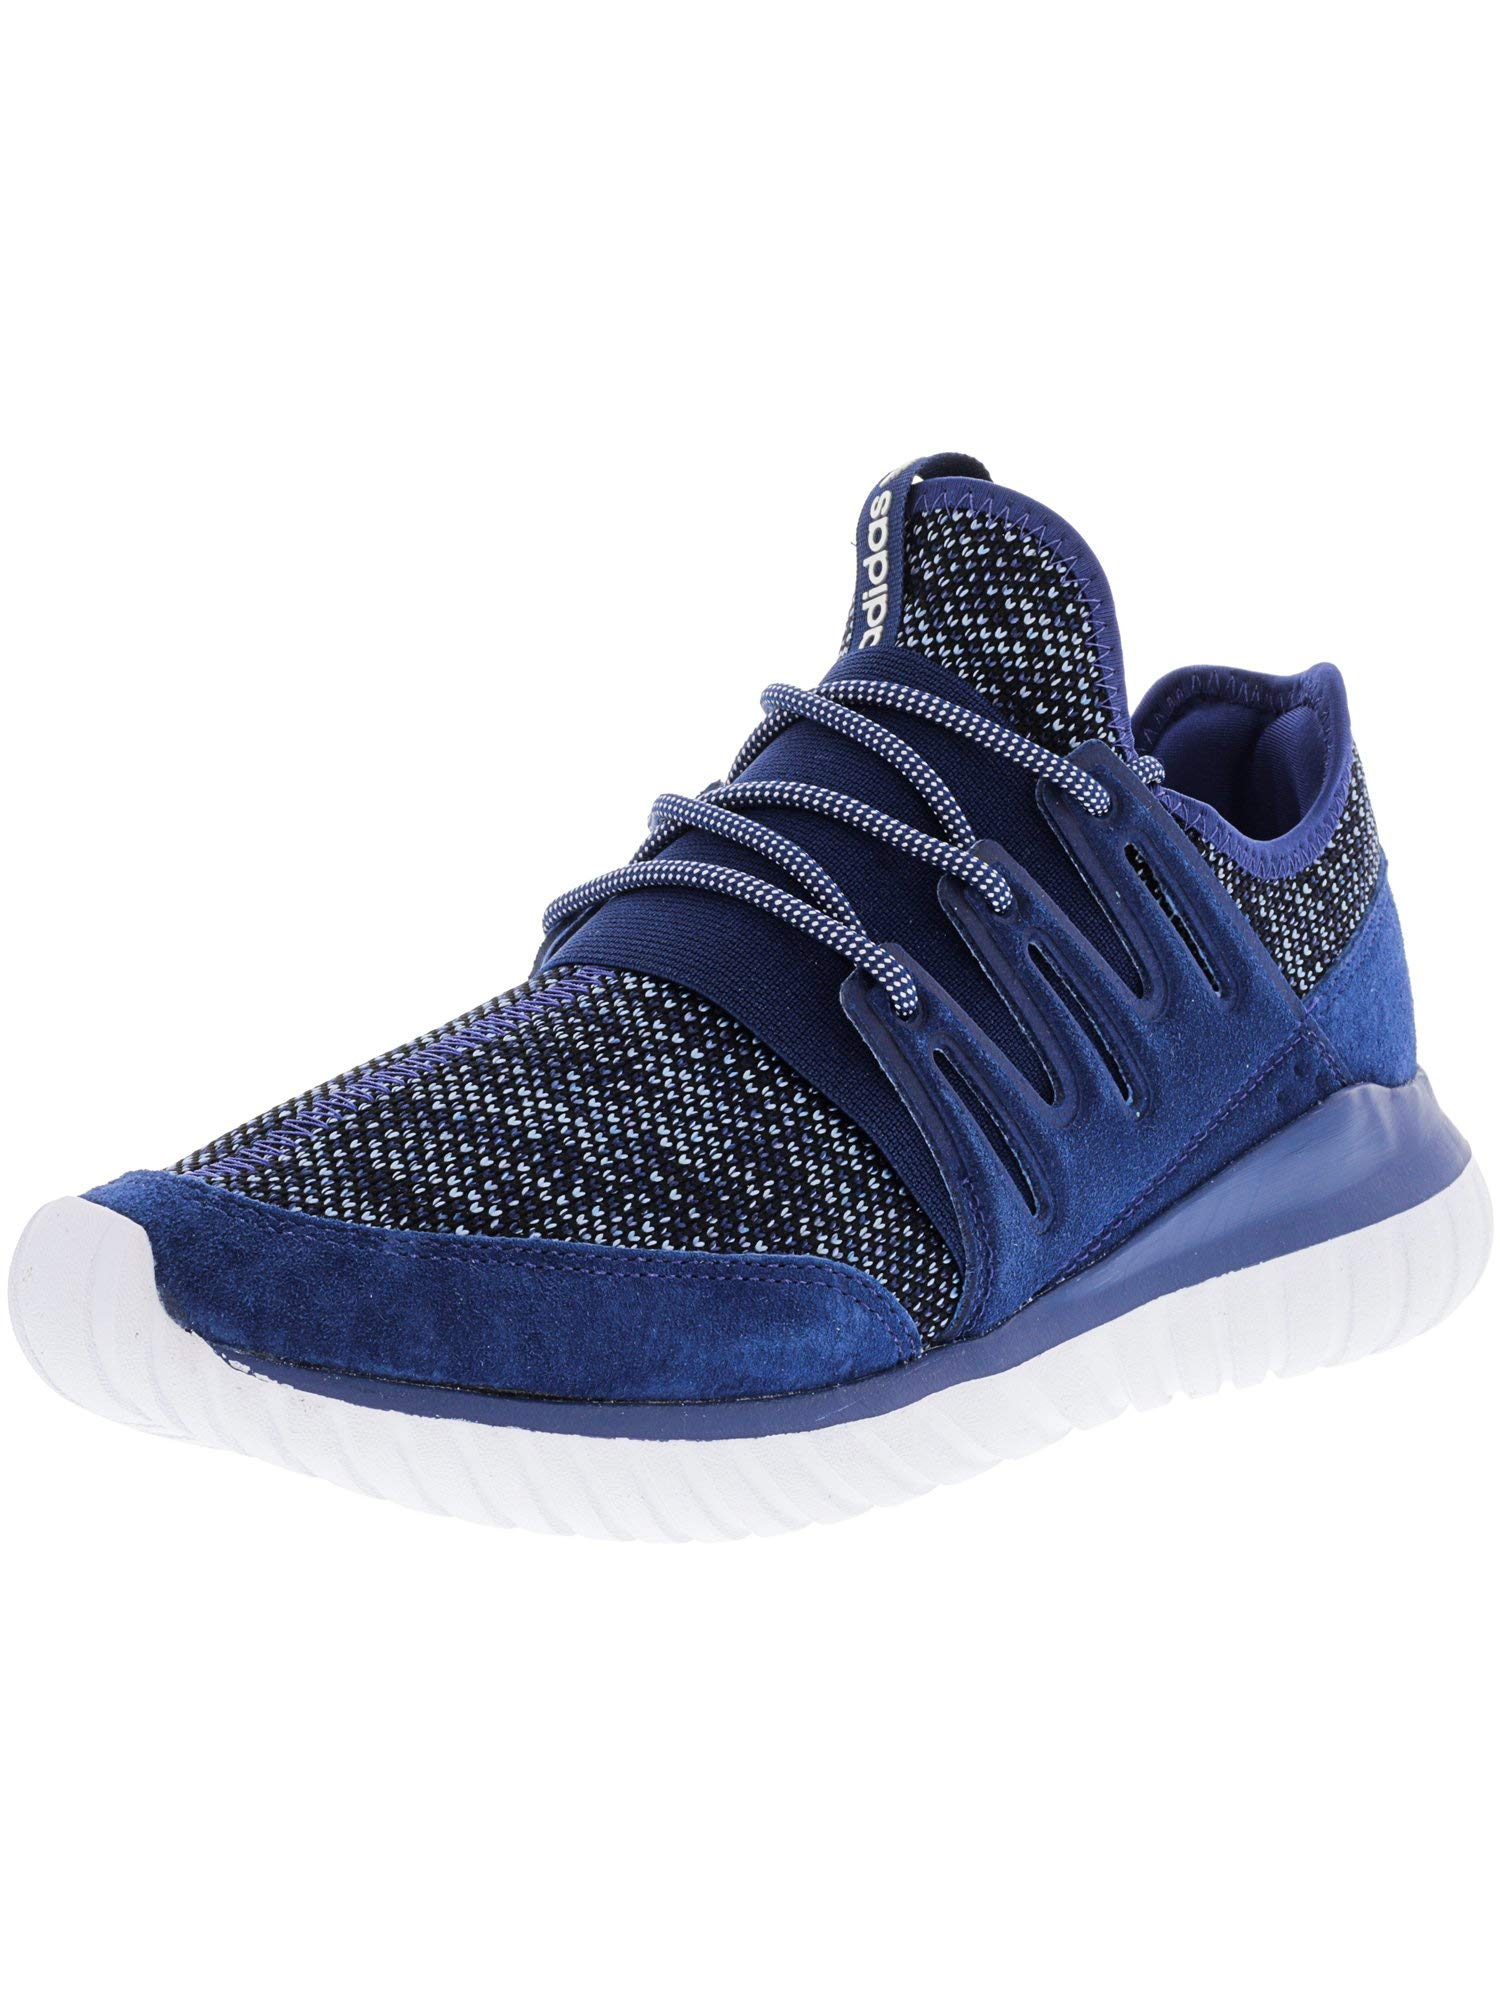 ba658d2cd91561 Galleon - Adidas Originals Men s Tubular Radial Fashion Running Shoe